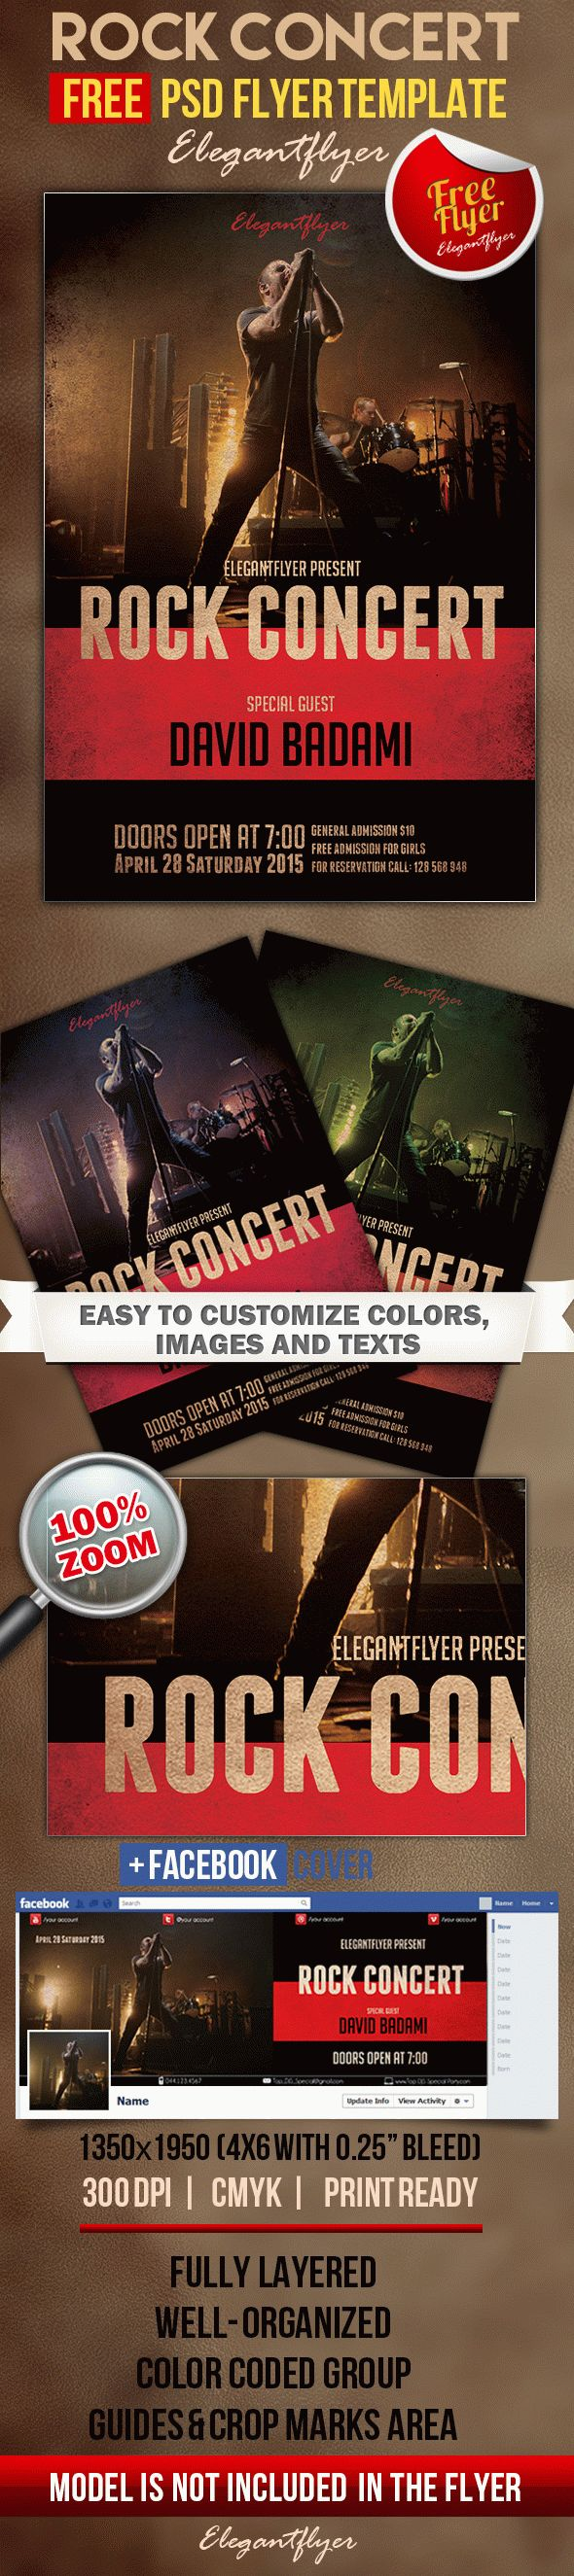 Rock concert – Free Flyer PSD Template + Facebook Cover